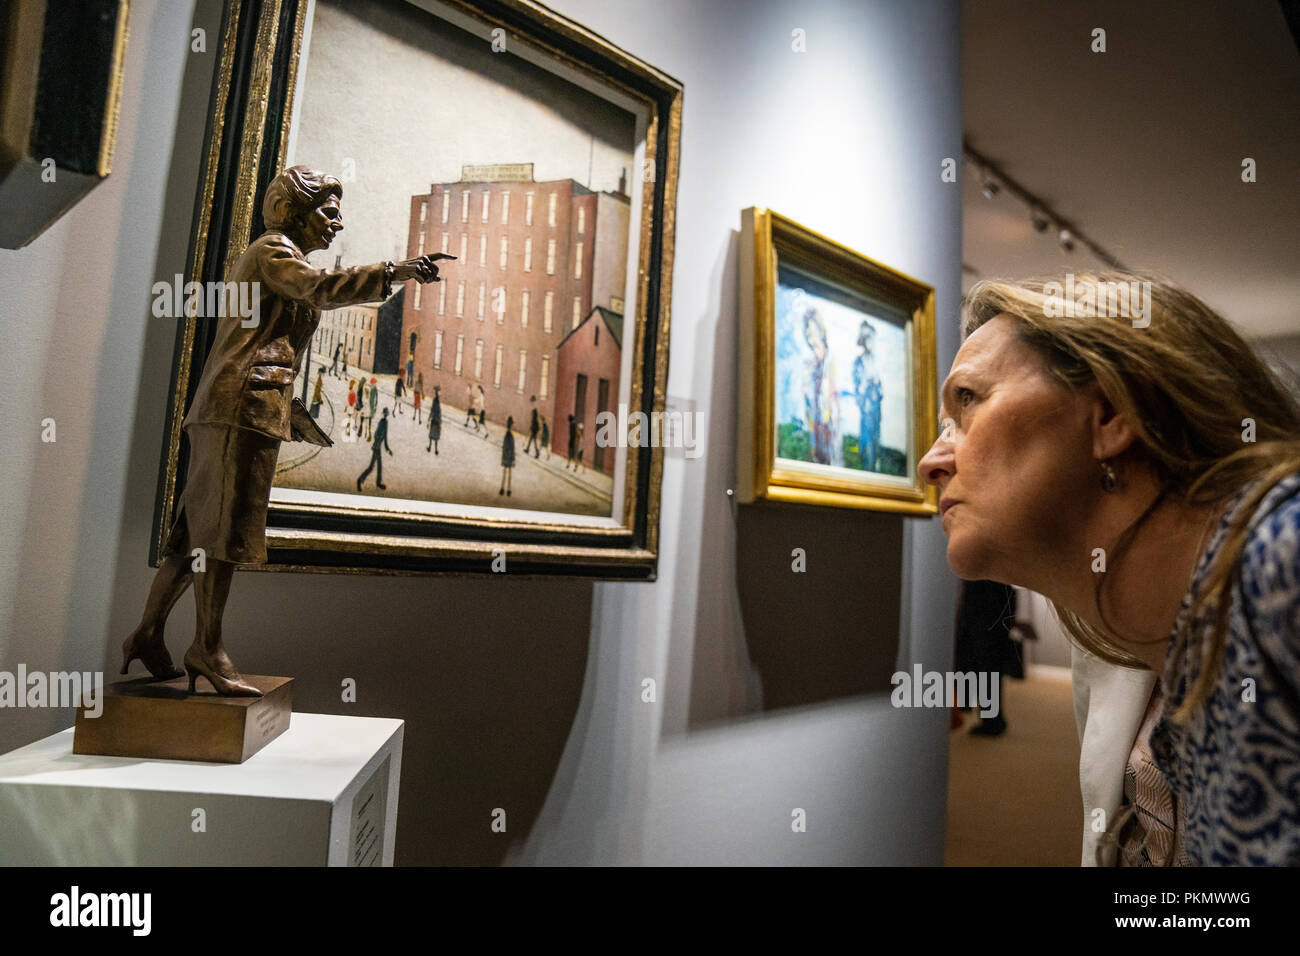 LONDON - SEPTEMBER 14: Visitors look at a bronze figure of Margaret Thatcher, next to a painting by LS Lowry, at the annual LAPADA Art and Antiques Fair opened today, September 14, 2018,  in Berkeley Square, London. Over 100 exhibitors present work from across the art, antiques, design and decorative arts spectrum. The Fair runs from September 14-19, 2018. Photo by David Levenson/Alamy Live news - Stock Image